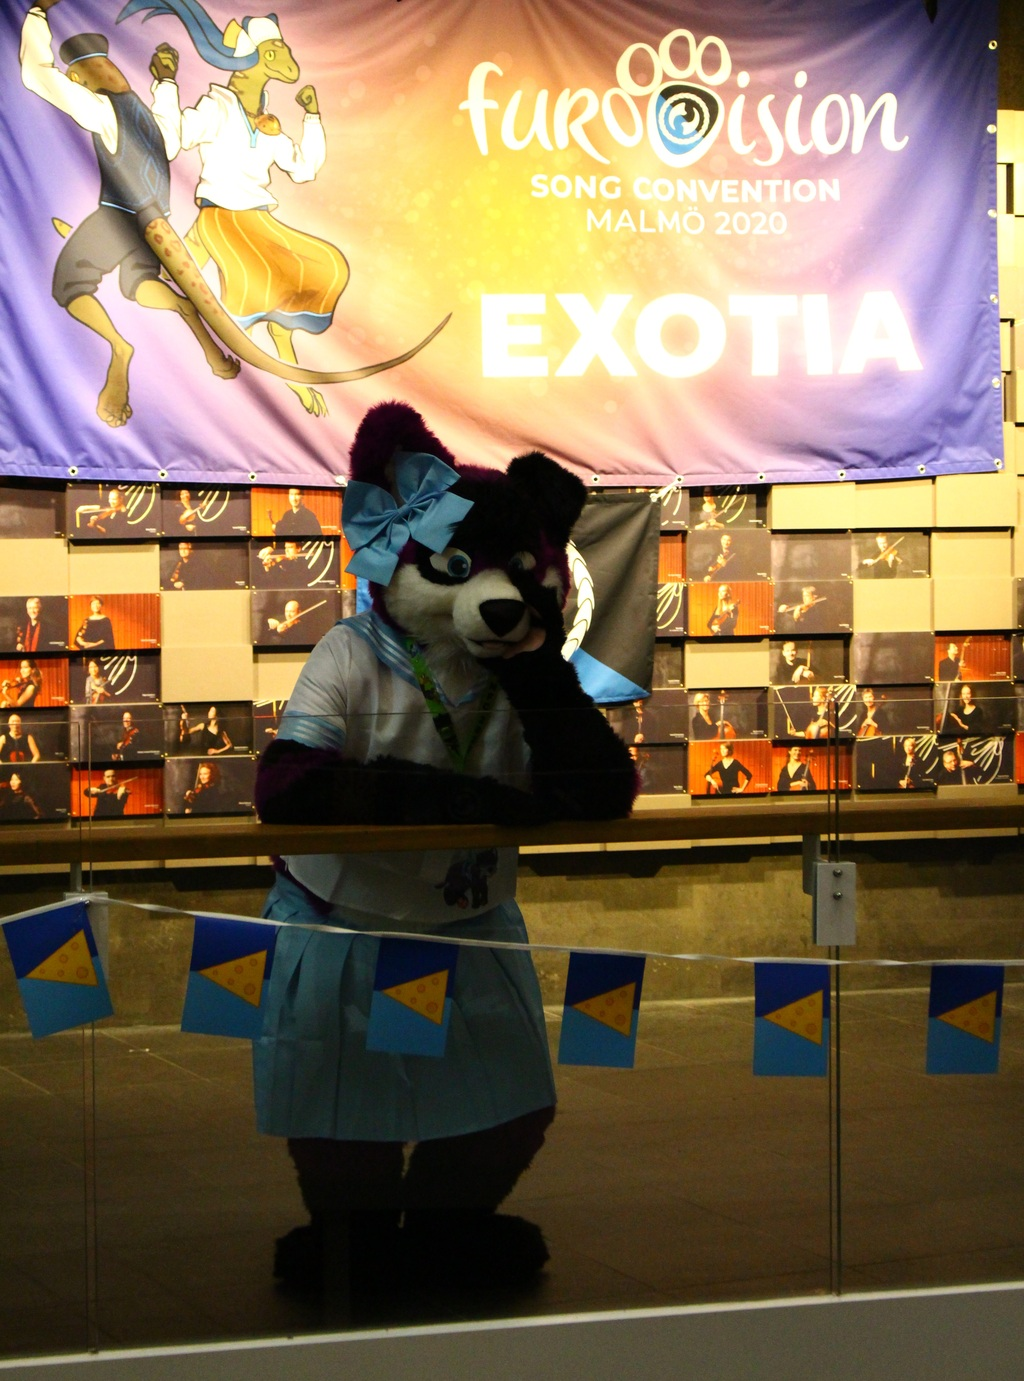 Just waiting here for Fursuit Friday